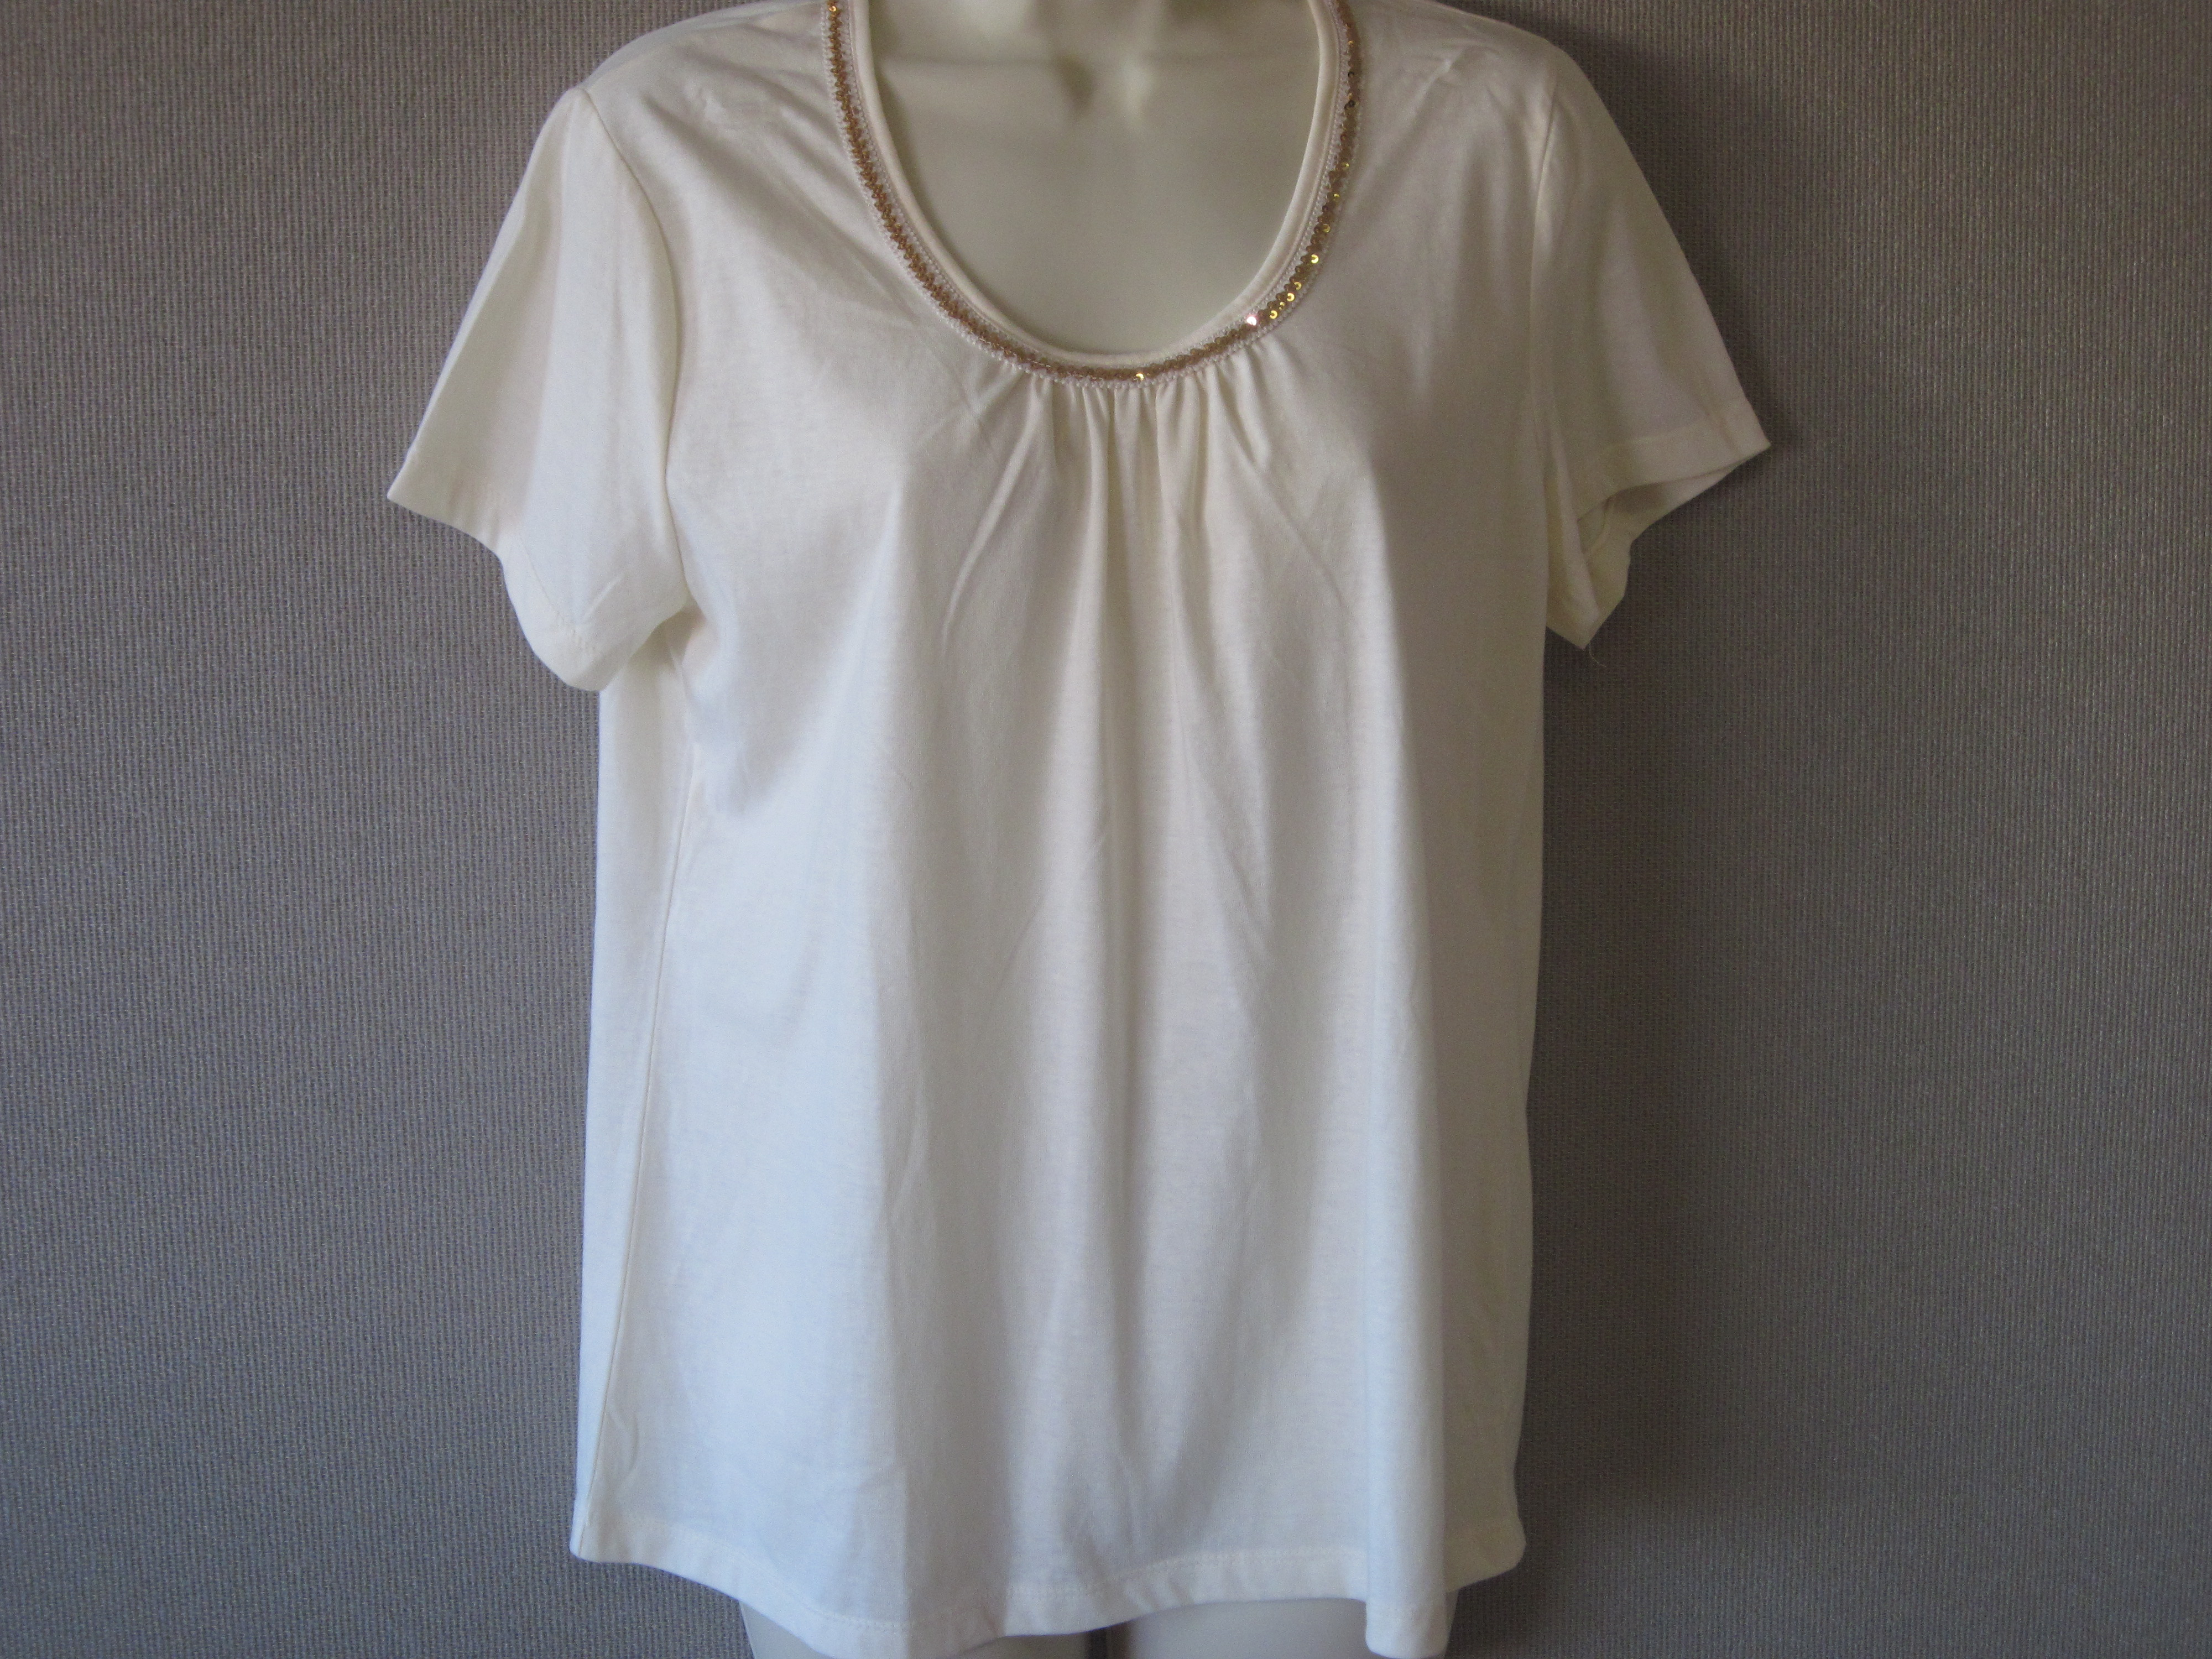 Jaclyn Smith Sz Small Sequin Trim Tee (cream, gold sequins)